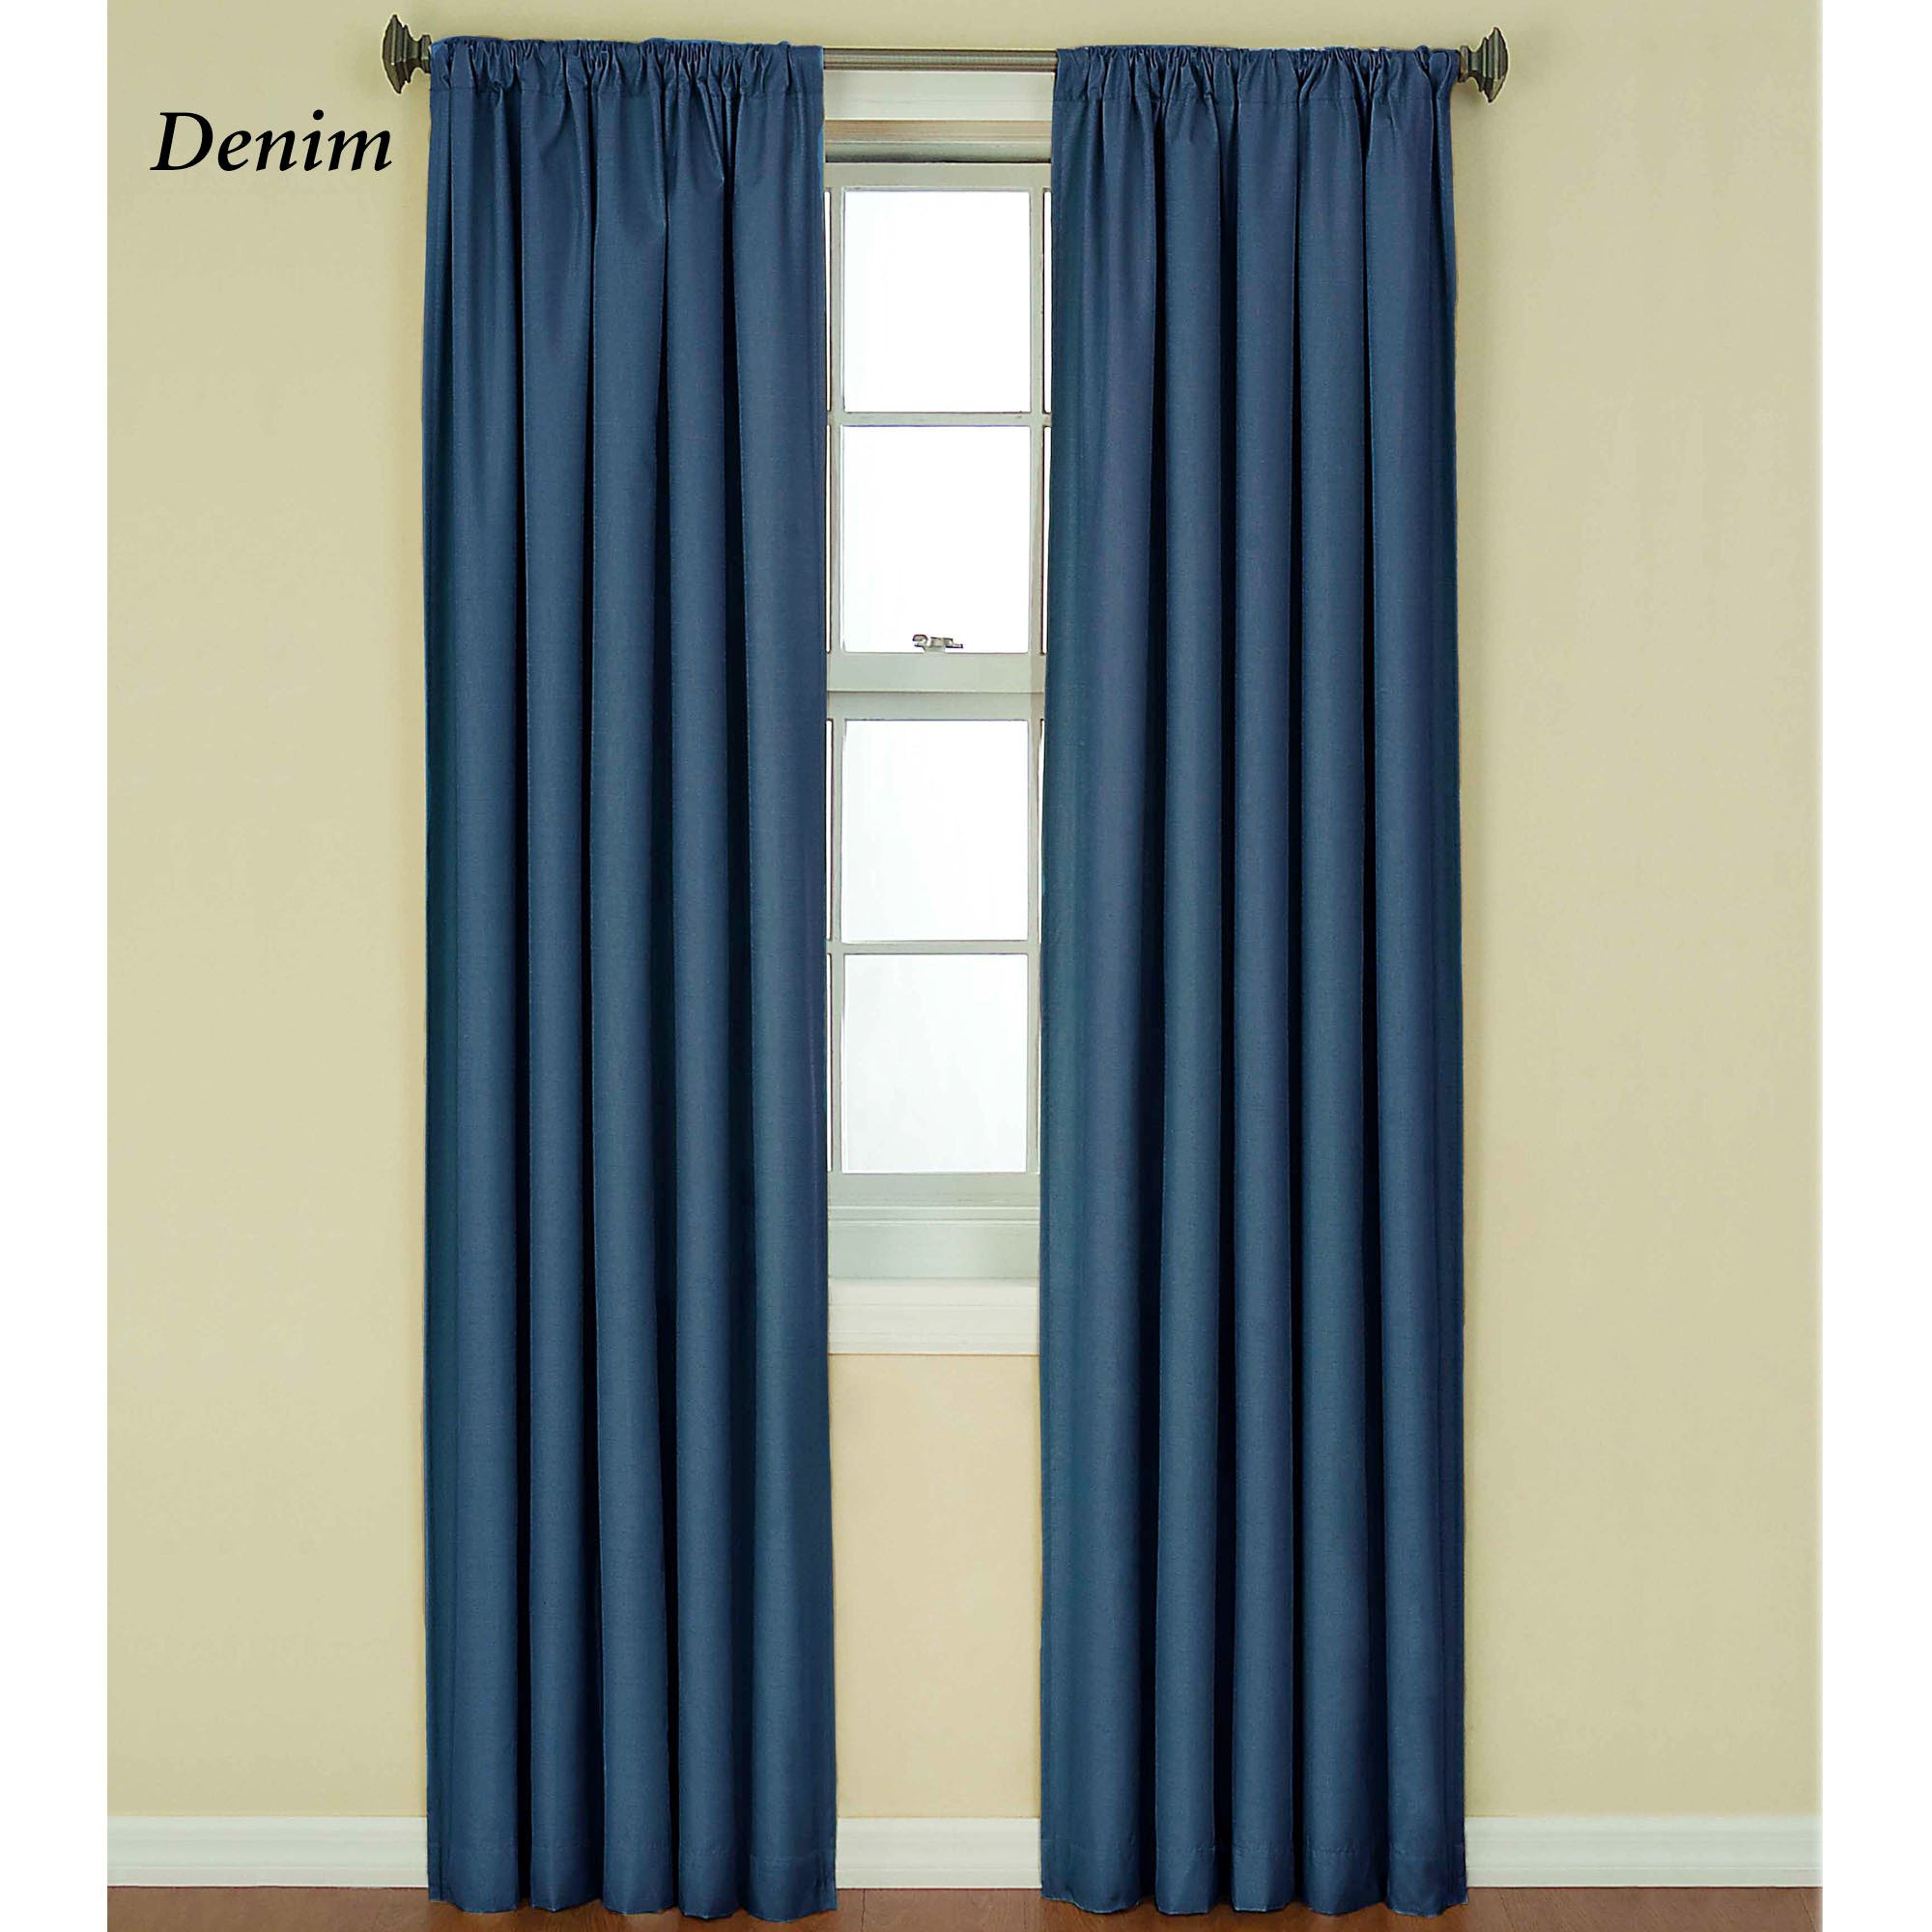 inch measure expand roll to direct from plain net click linen image made over blue voile white curtains curtain sapphire zoom tape